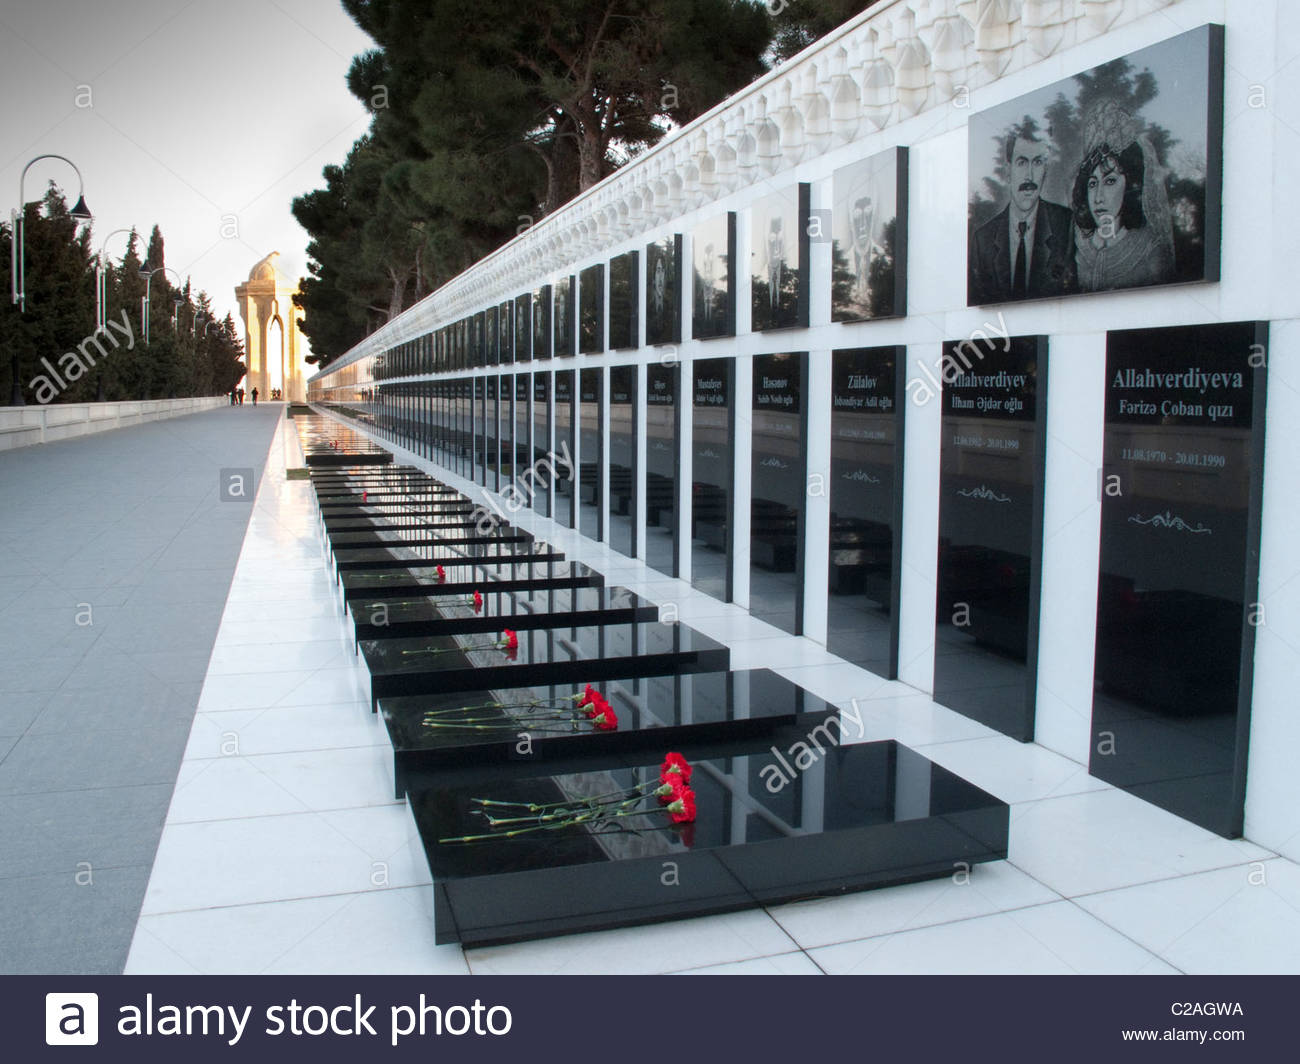 Martyrs' Lane, memorial to those killed by Soviets, Black January 1990. Stock Photo